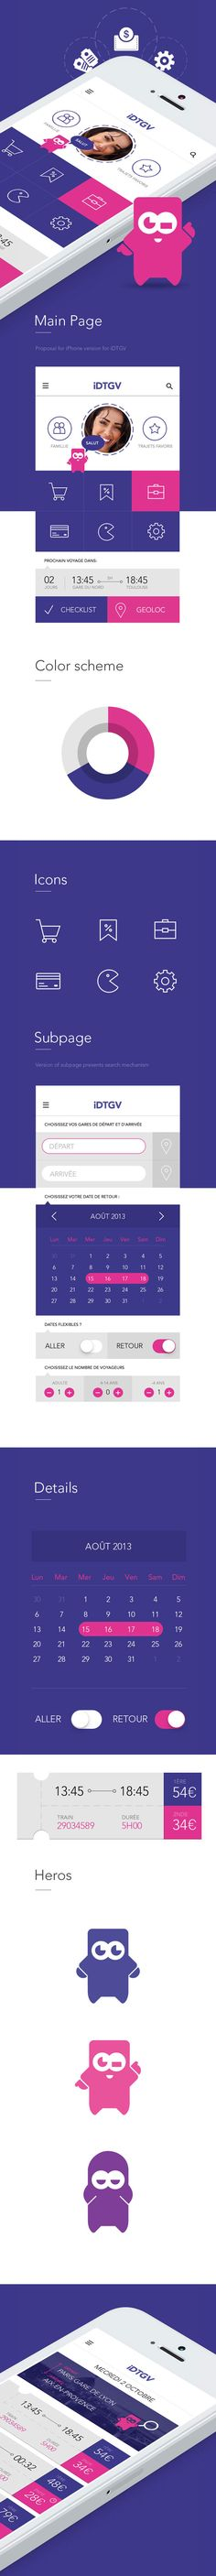 Design proposition application #mobile IDTGV, IOS7